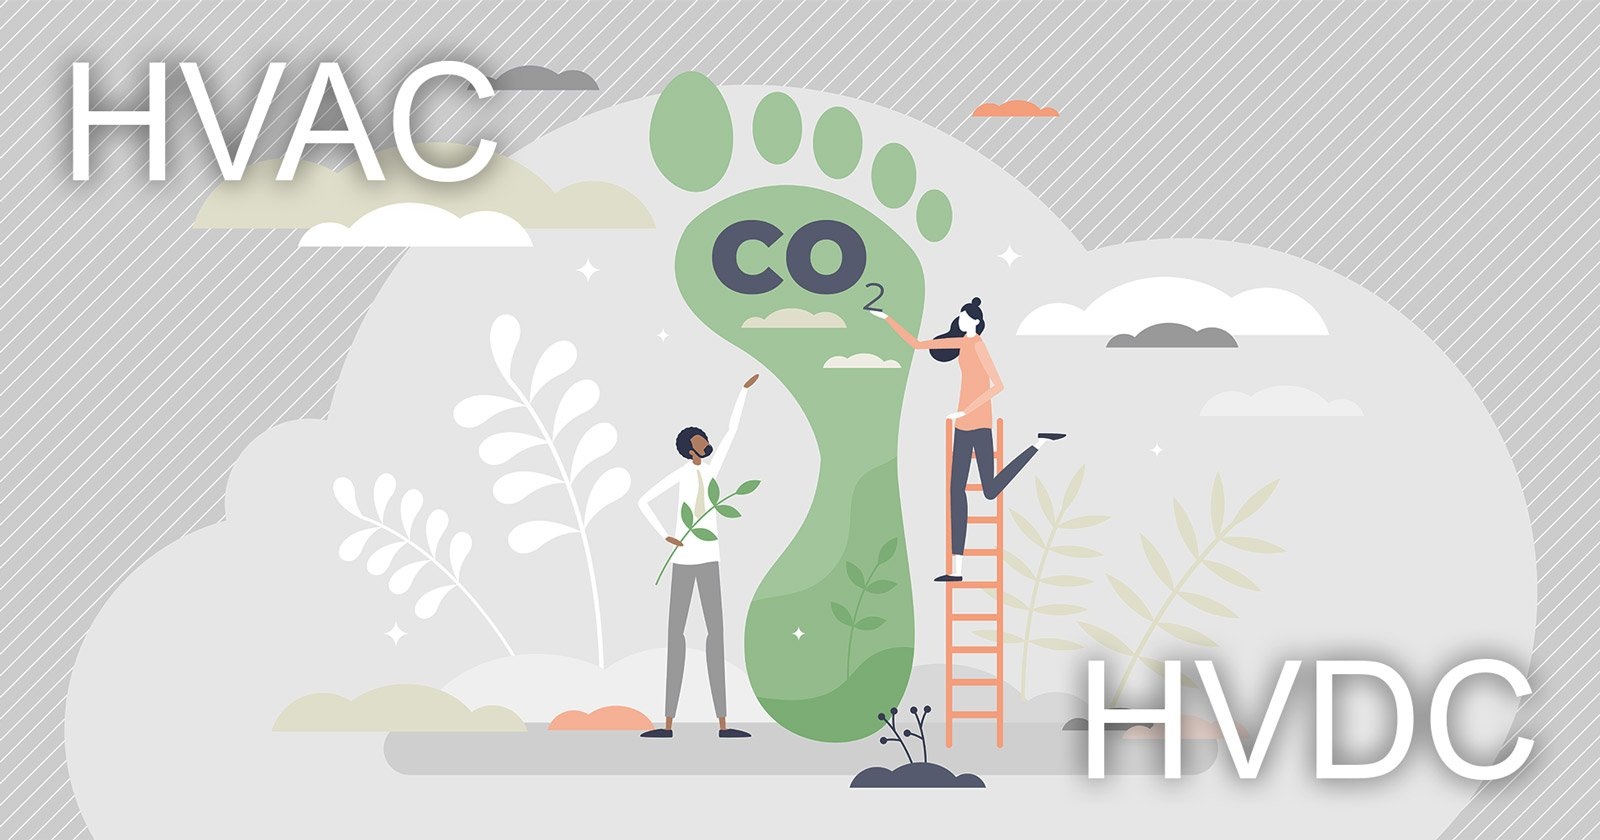 Are we really reducing CO2 emissions as well as we could be?